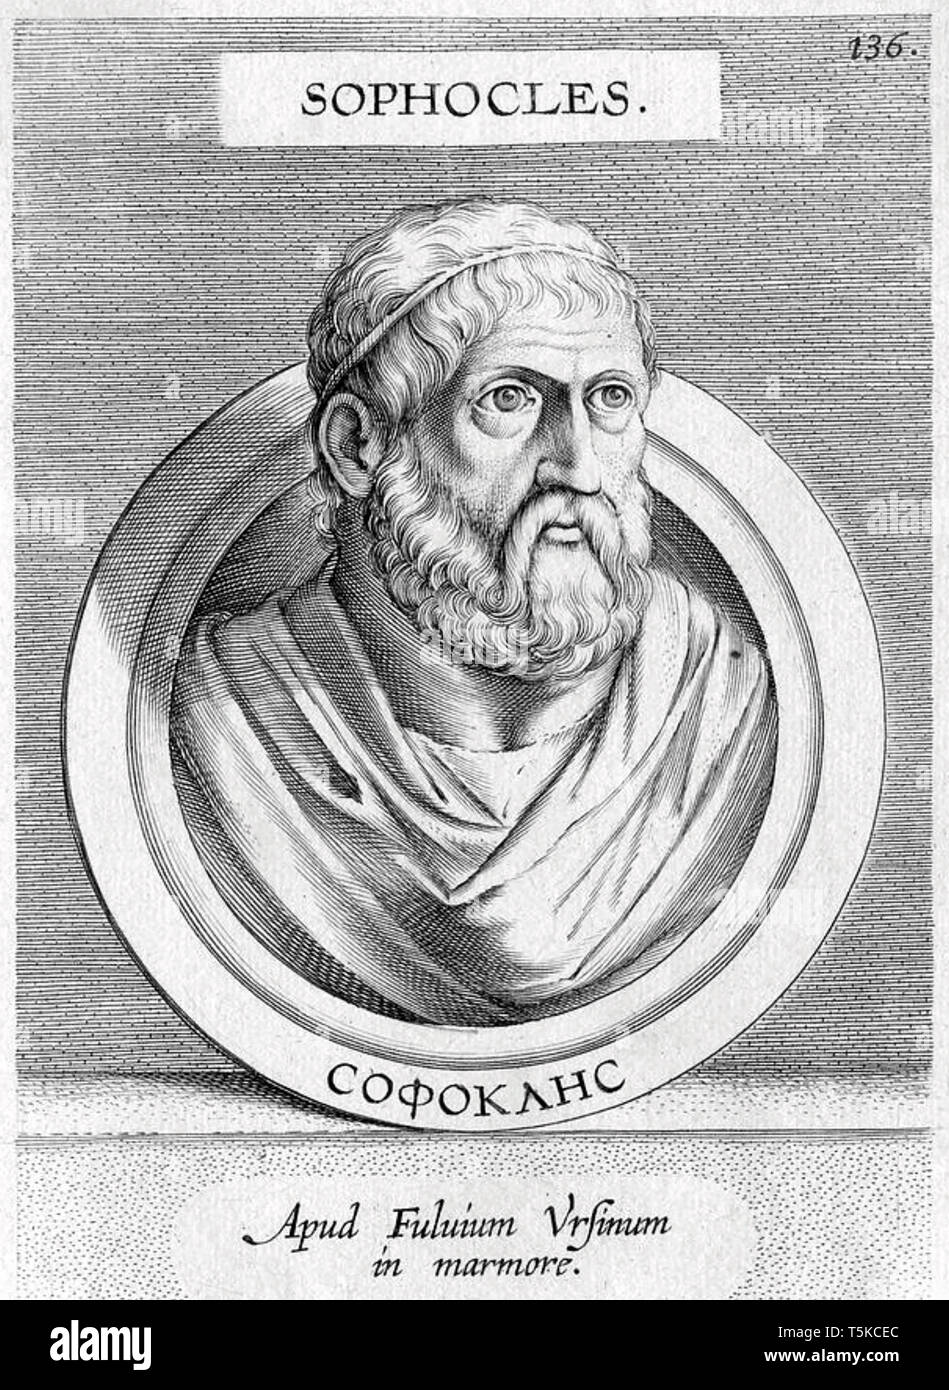 SOPHOCLES (c 497/6 -406/5 BC) Greek tragedian. !8th centurty engraving based on bust in the Pushkin museum - Stock Image